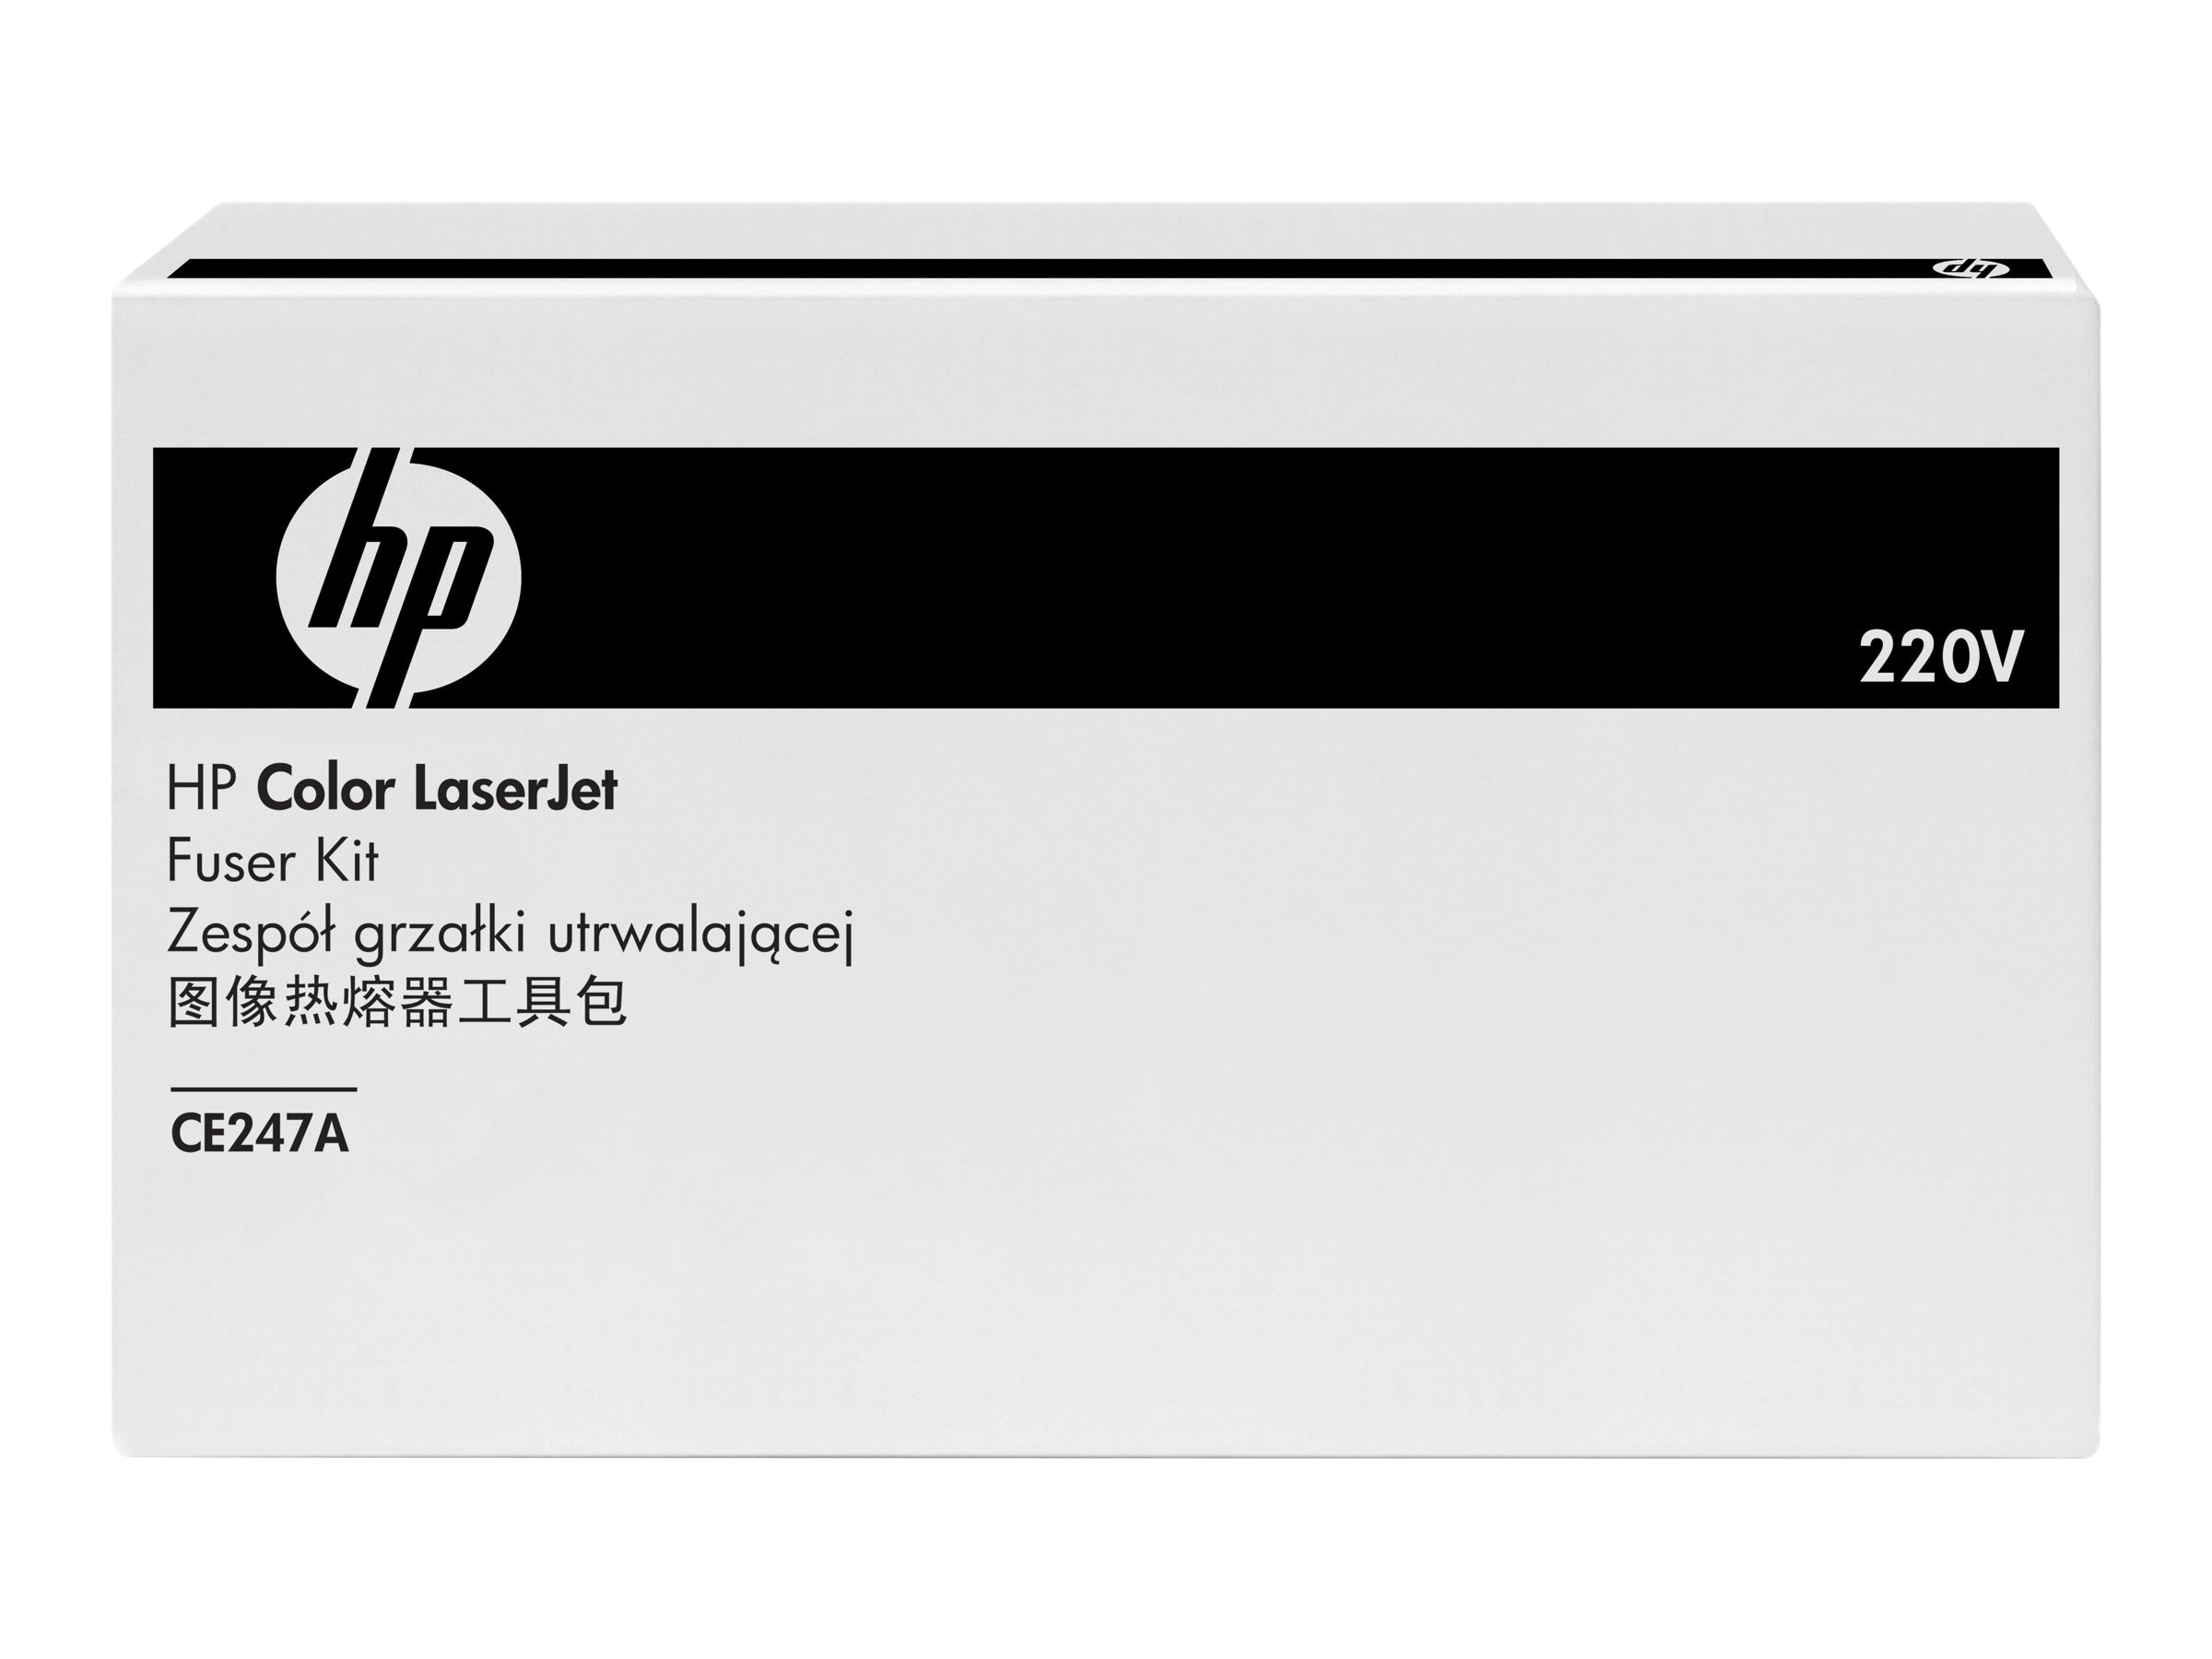 HP Inc. CE247A Image 1